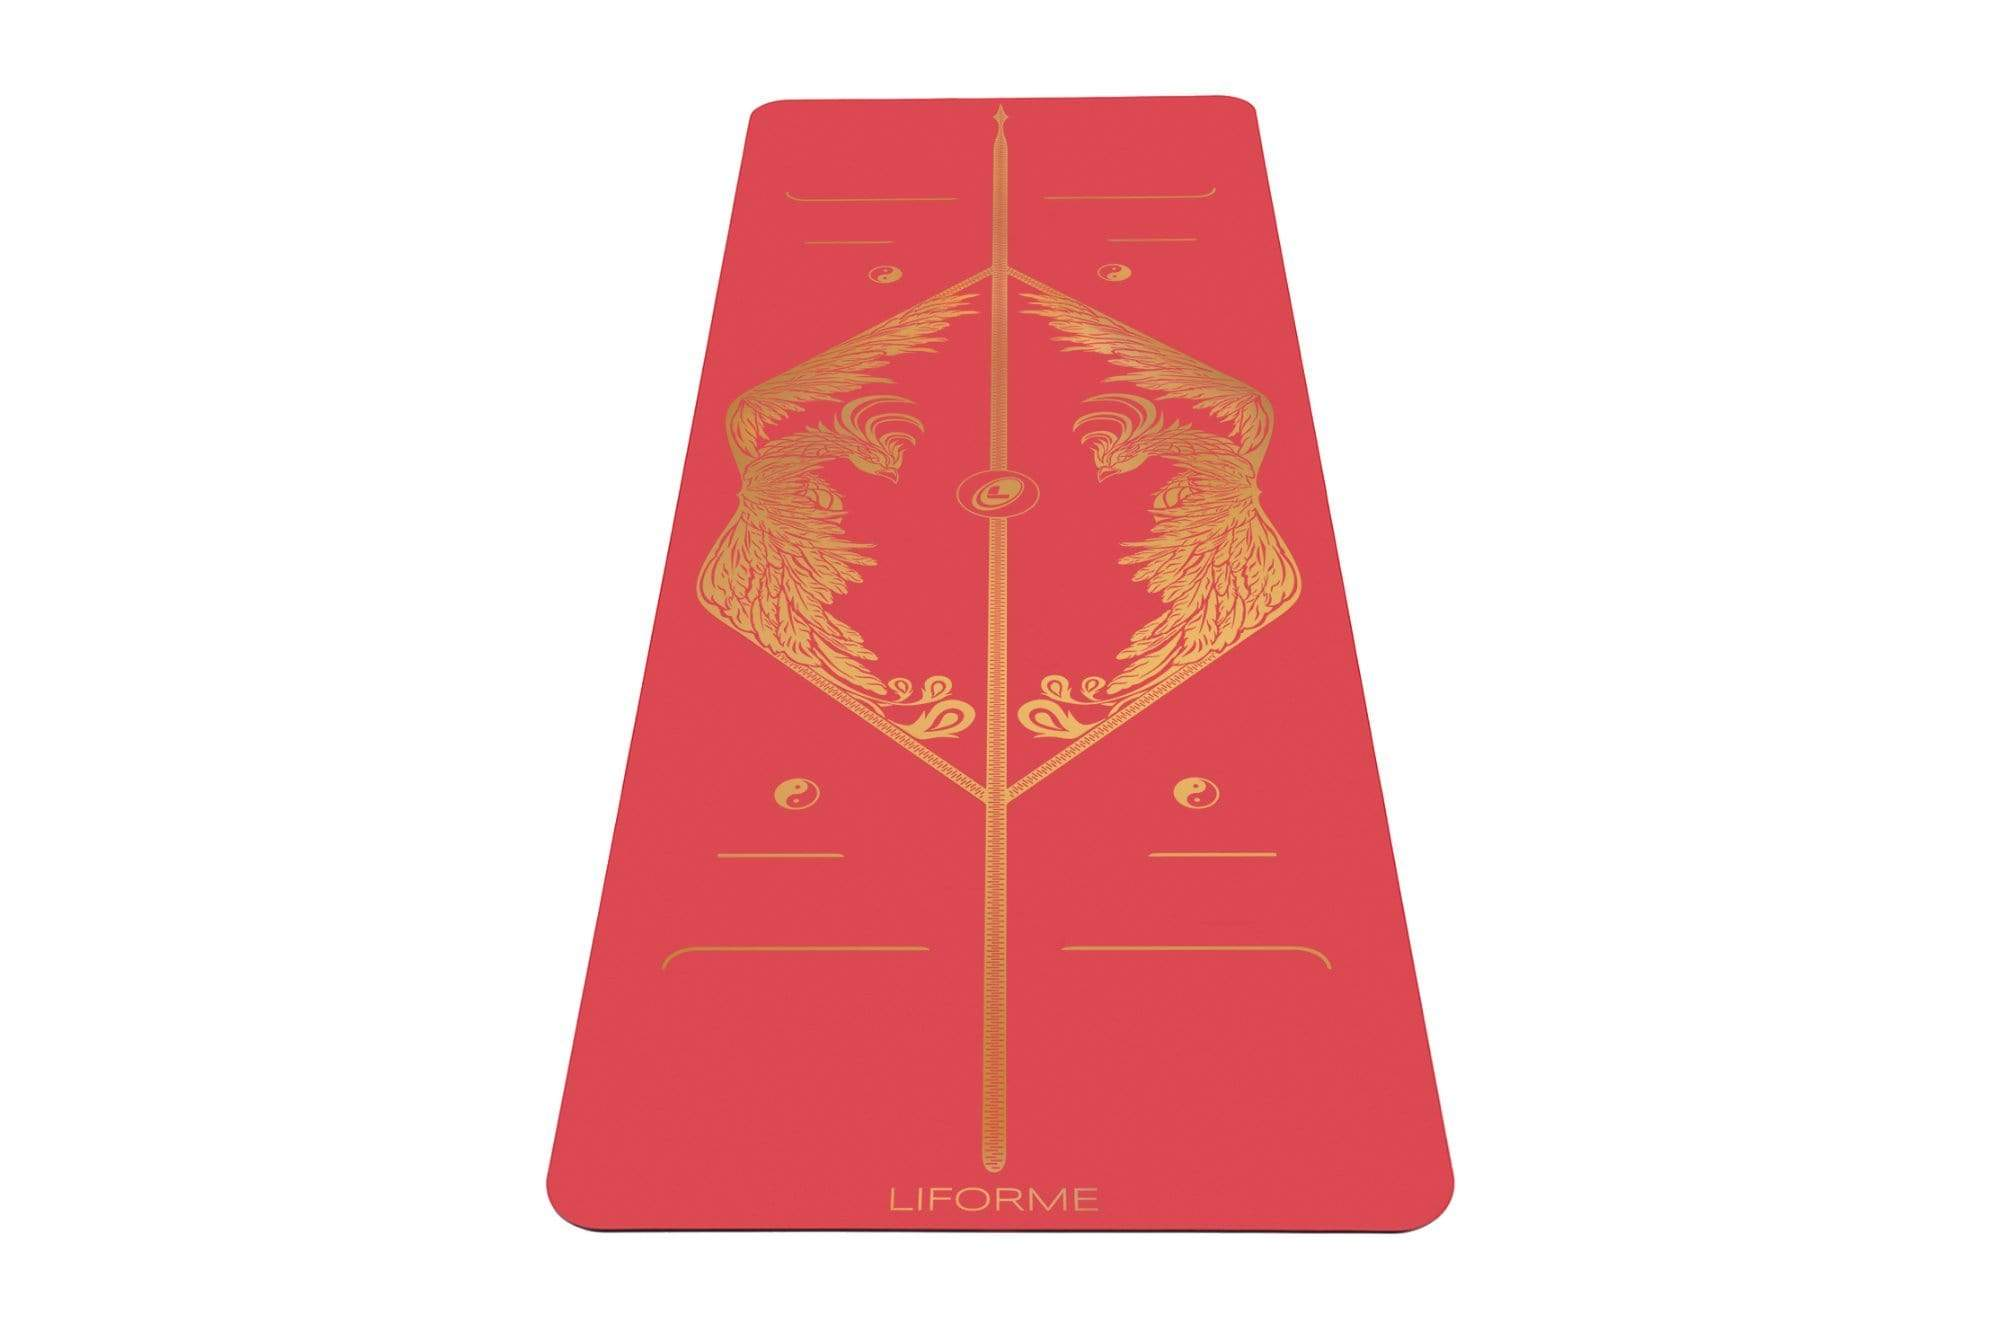 Portrait view of Phoenix Yoga mat from Liforme